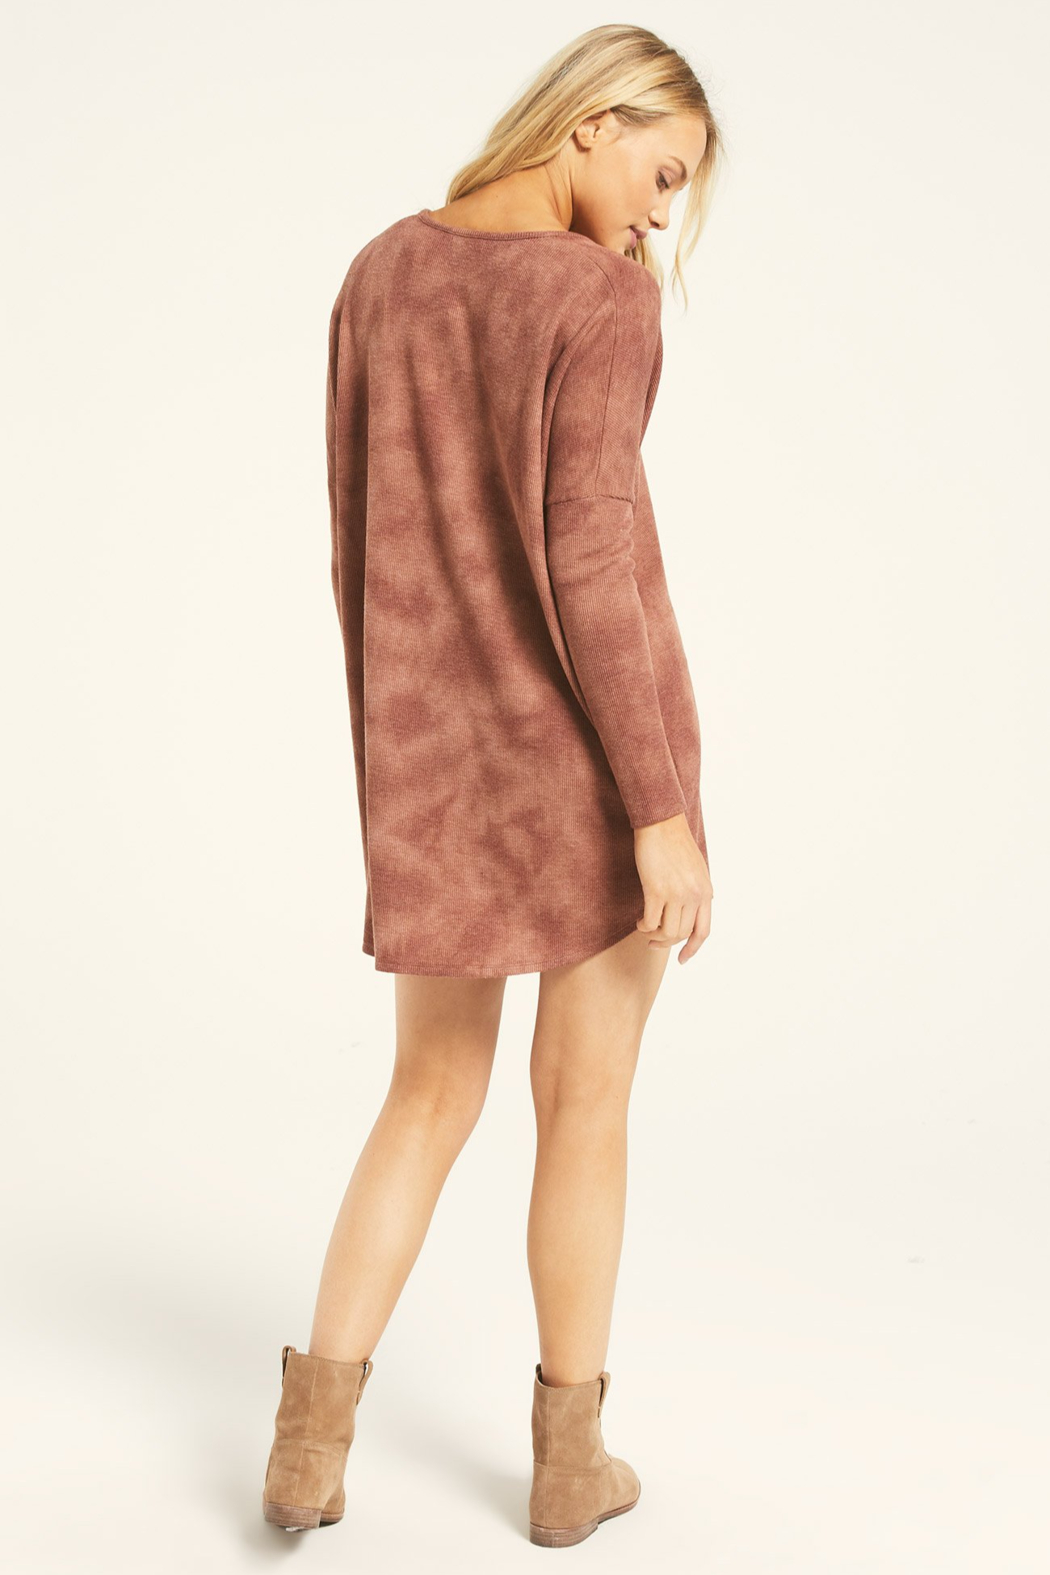 z supply Grove Thermal Dress - Side Cropped Image